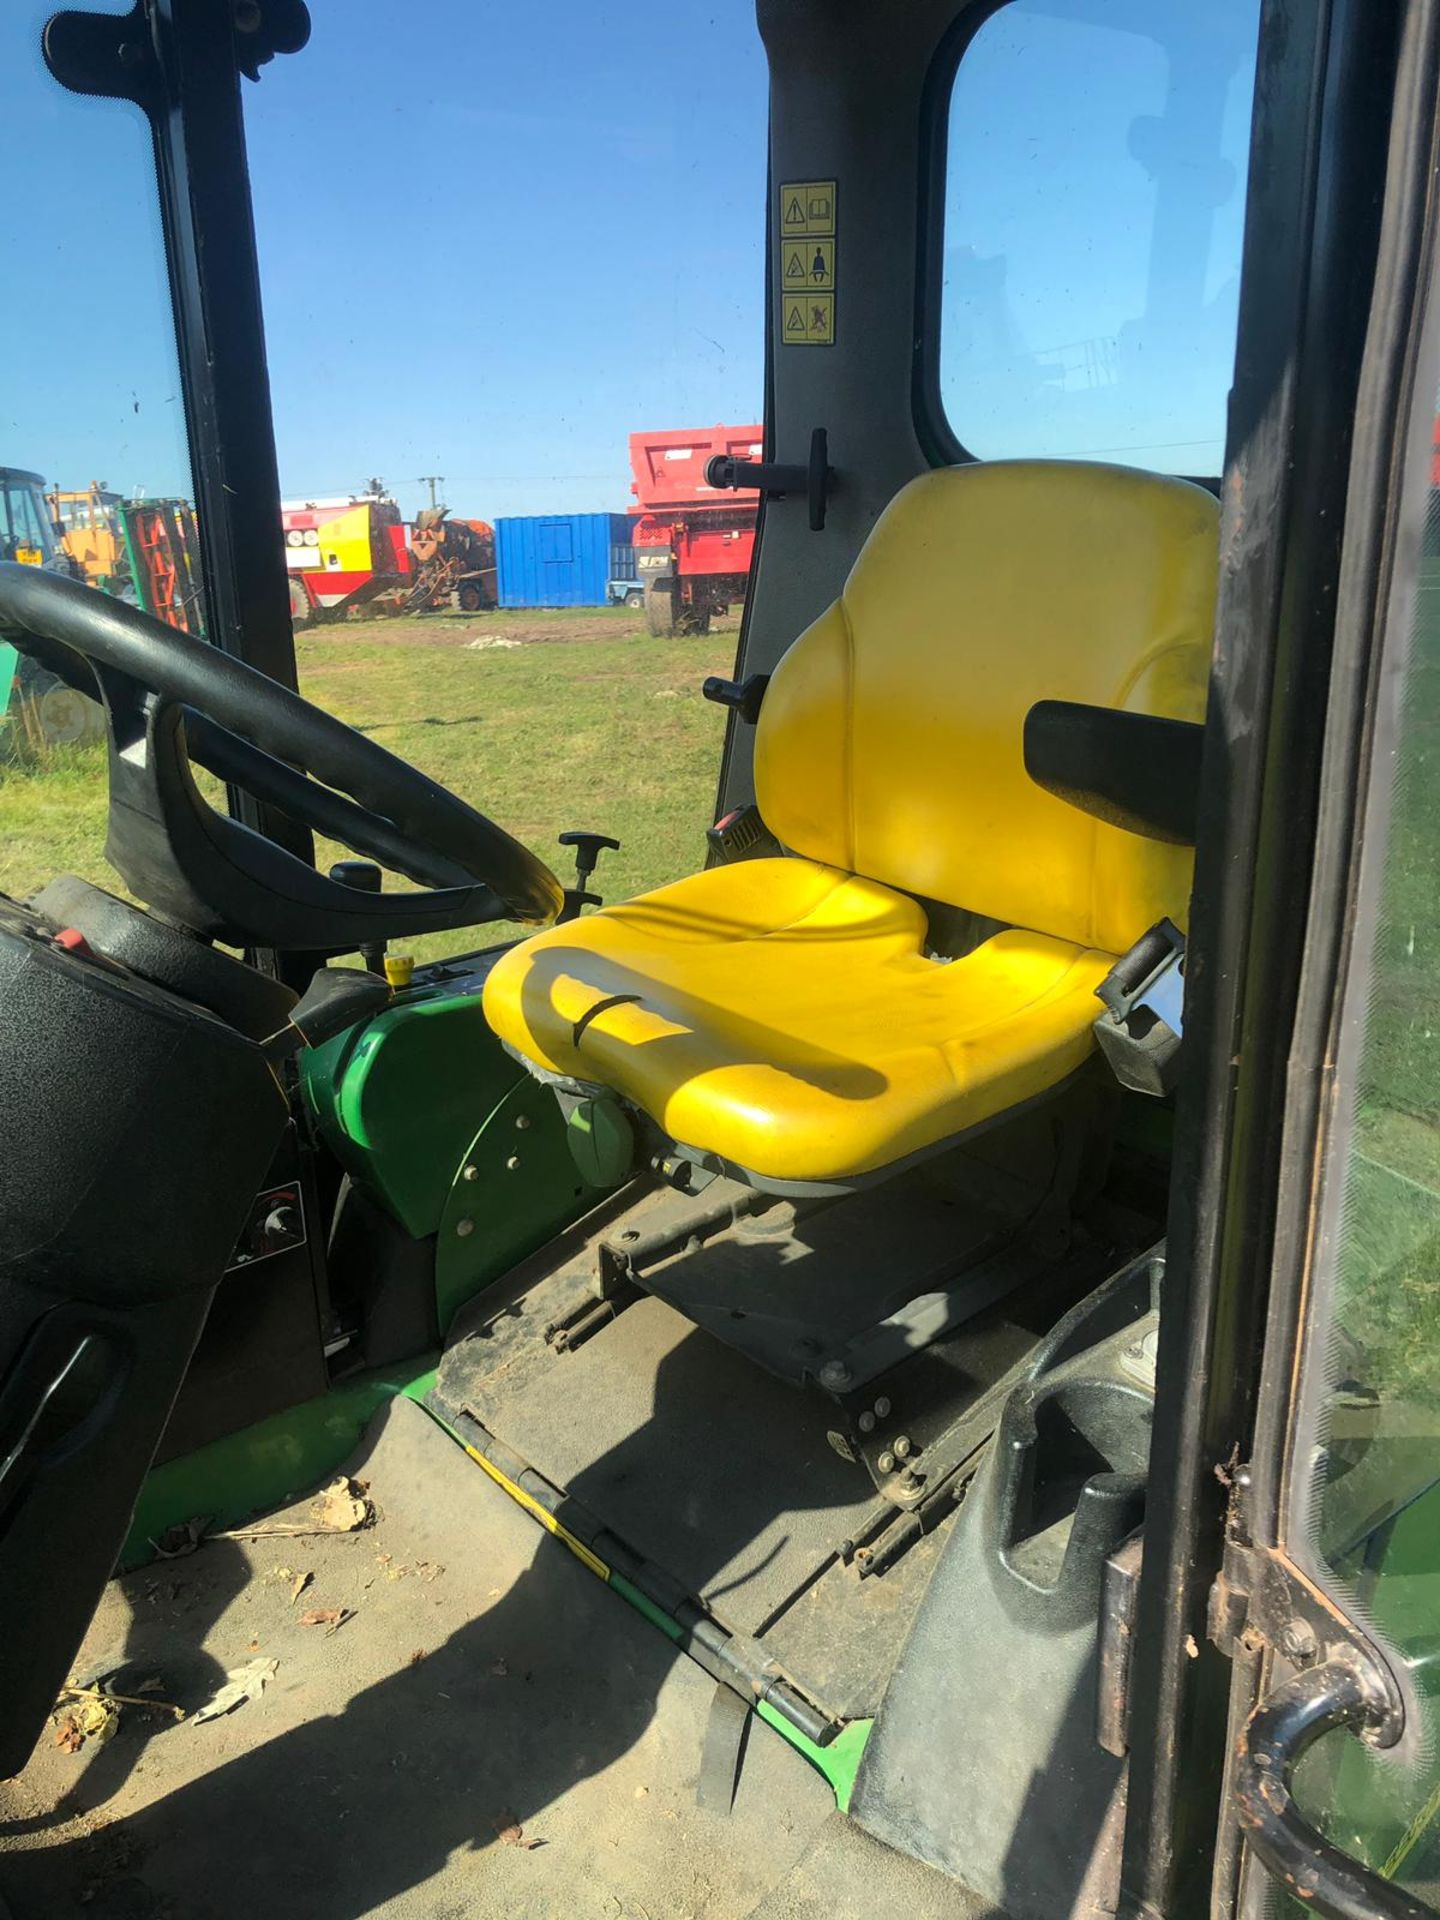 Lot 22 - JOHN DEERE 1545 RIDE ON LAWN MOWER WITH FULL CAB, YEAR 2006, RUNS, WORKS AND CUTS *PLUS VAT*